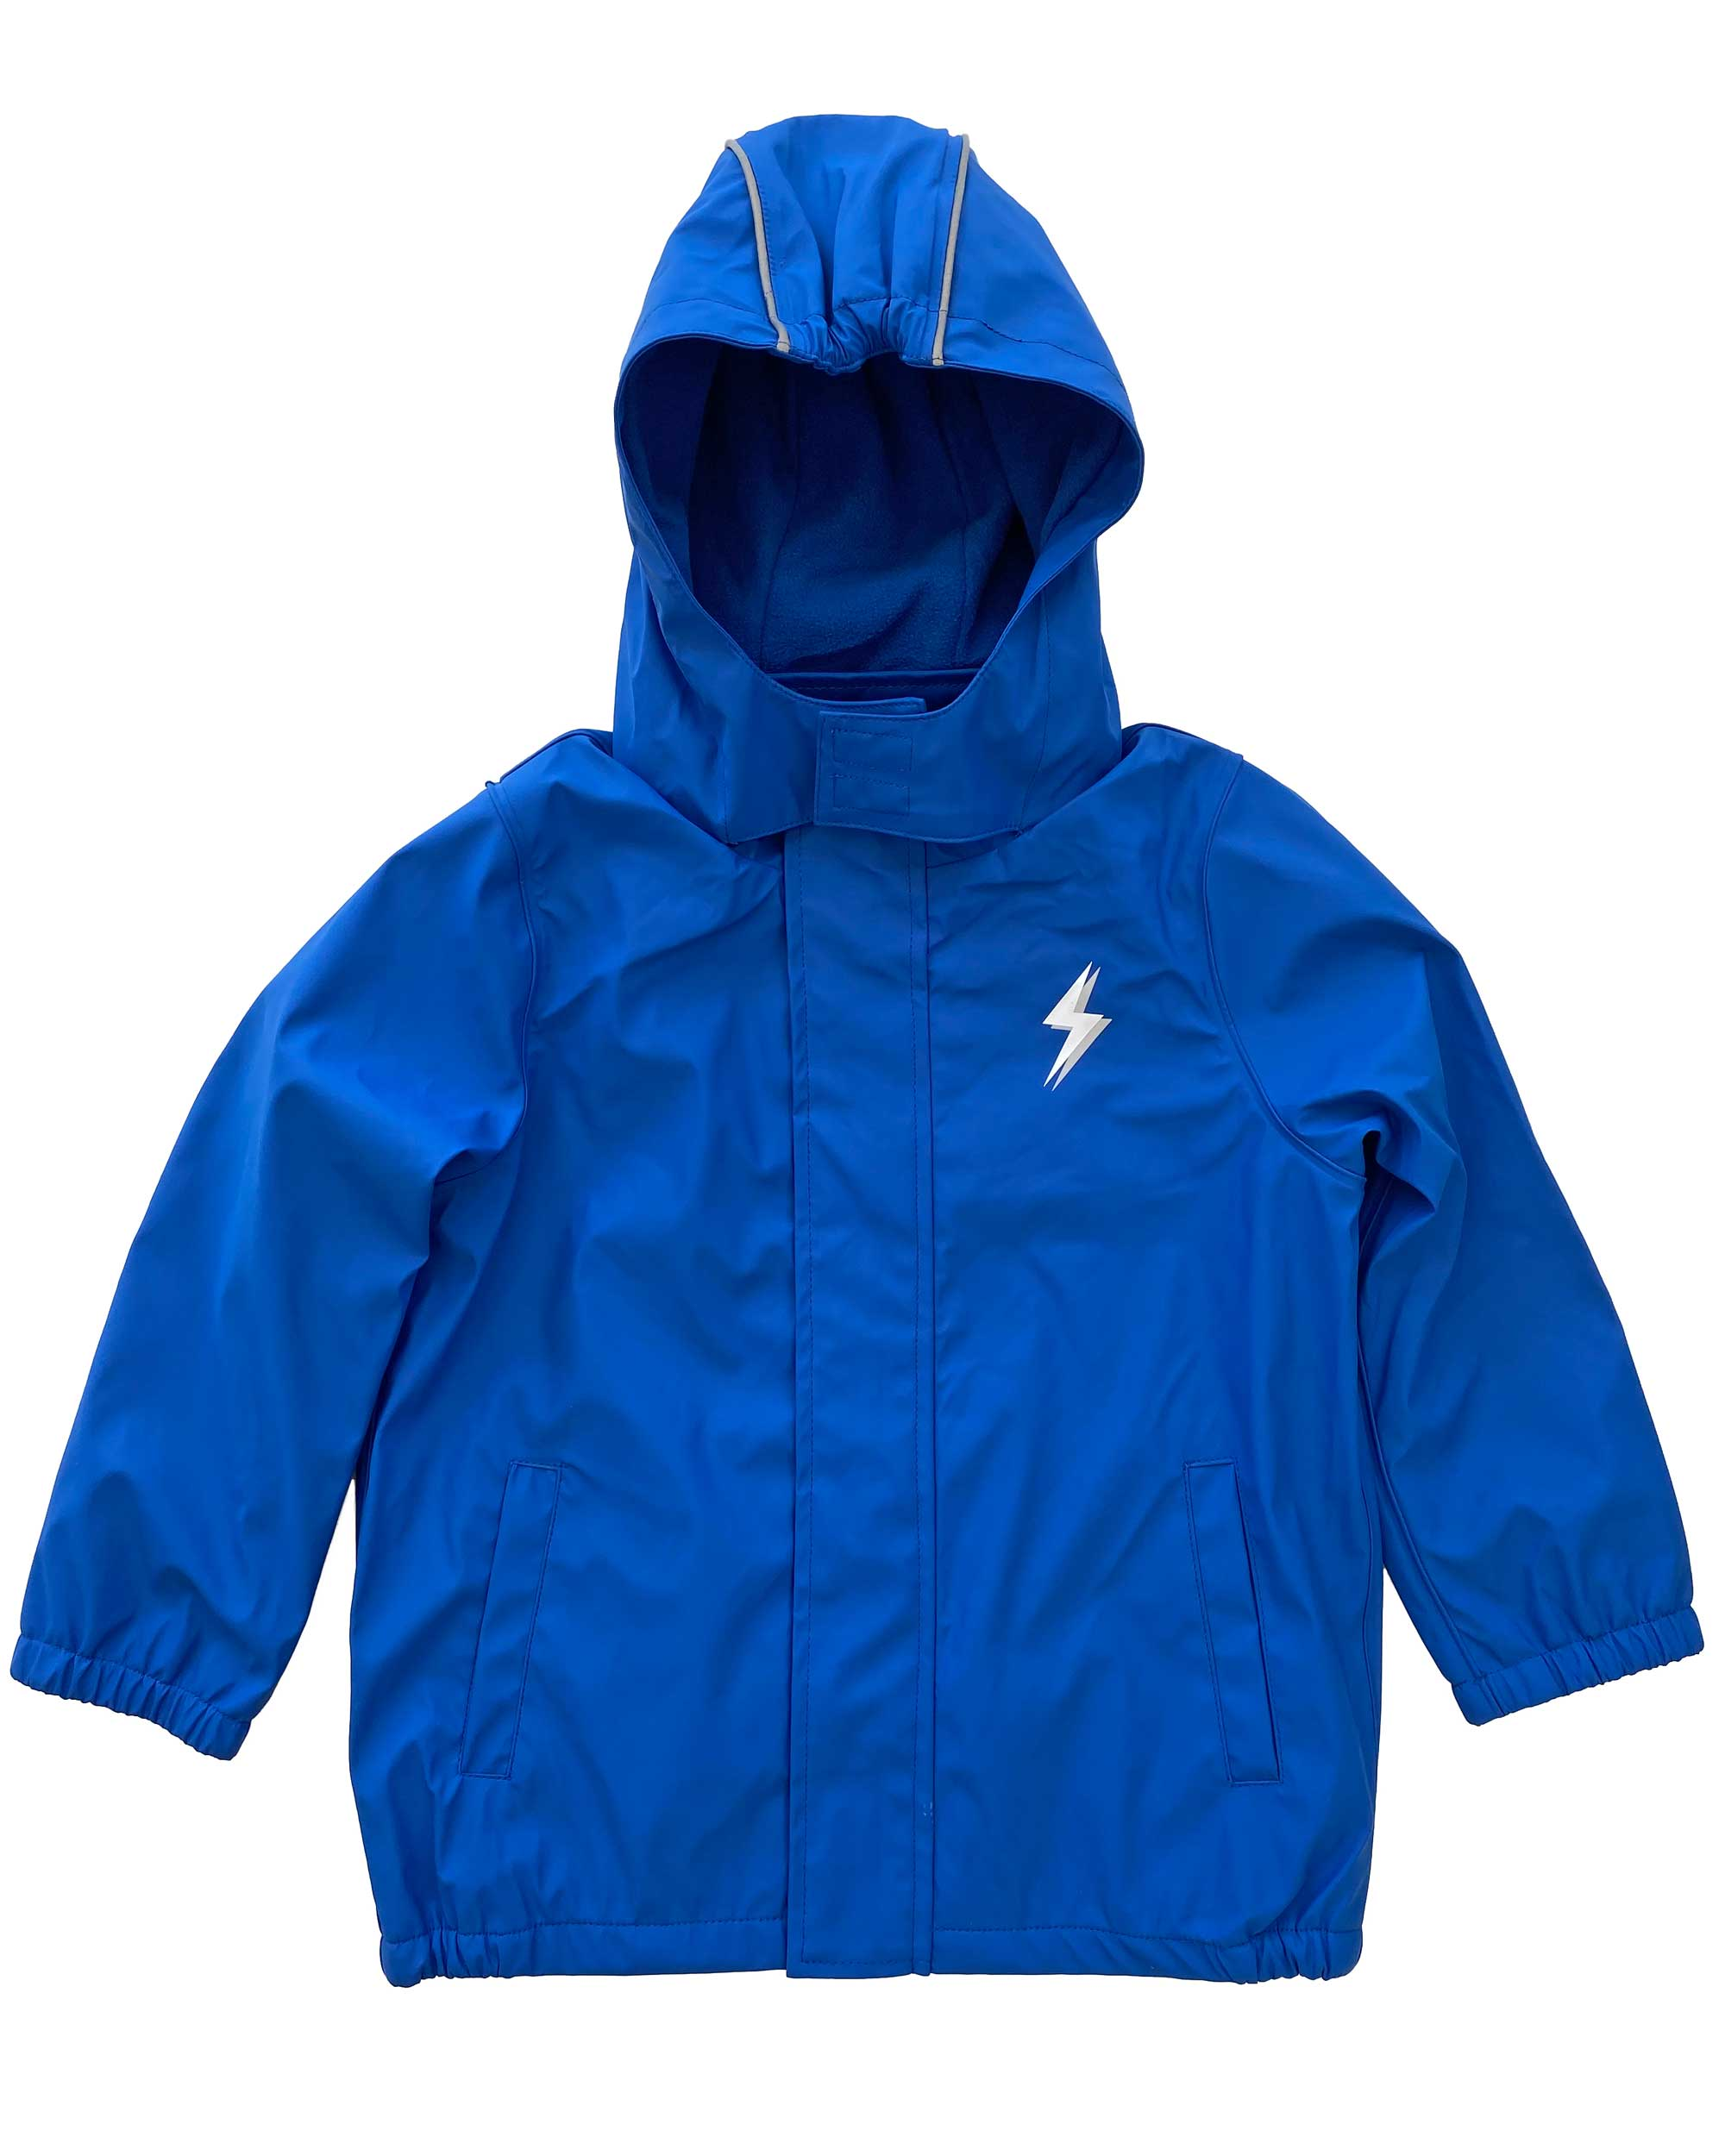 Splasher Blue Waterproof Raincoat